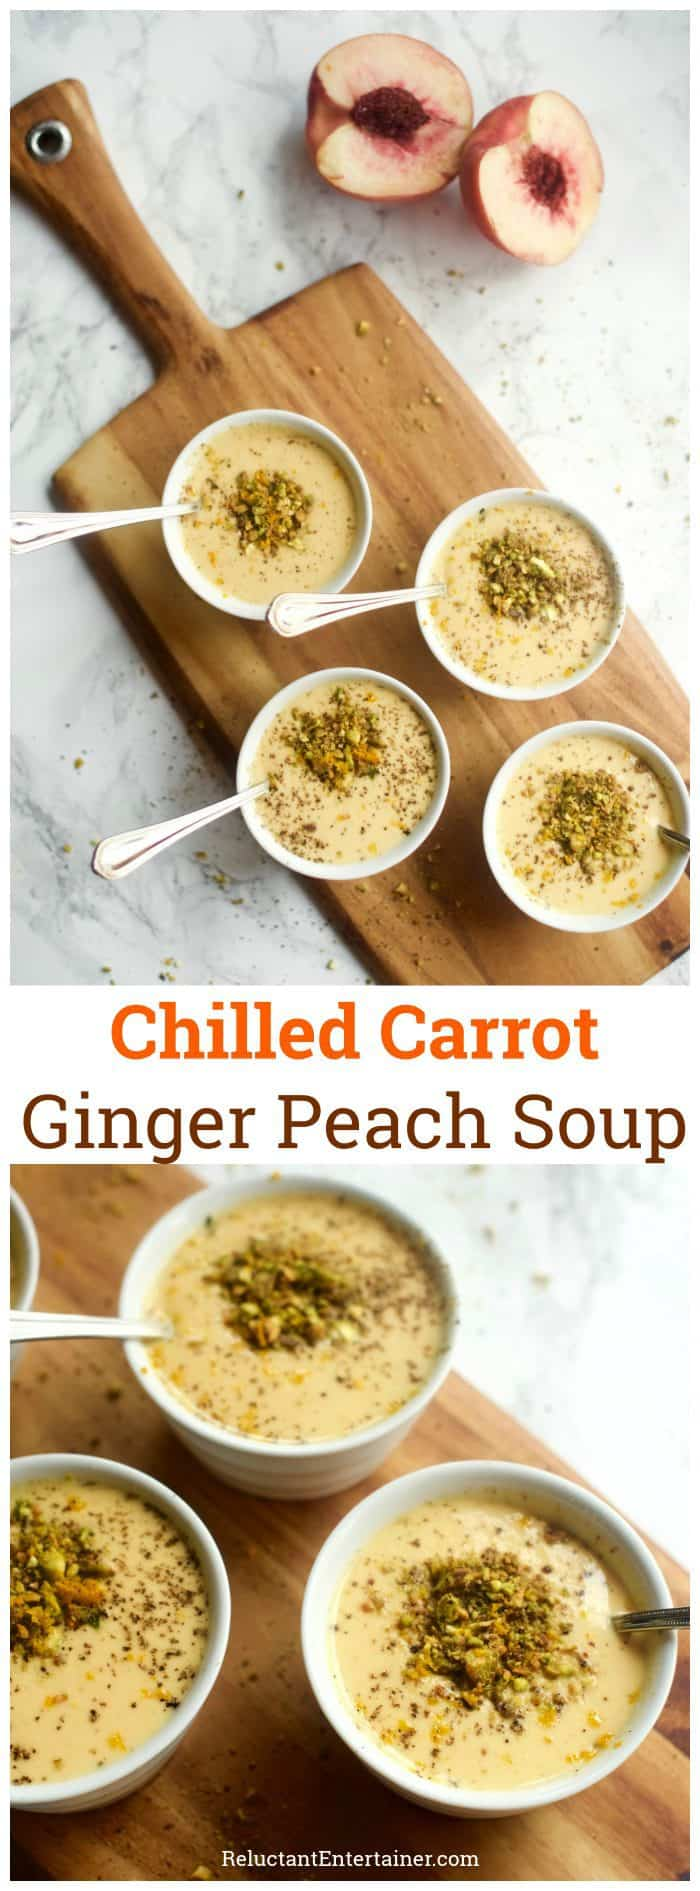 Chilled Carrot Ginger Peach Soup